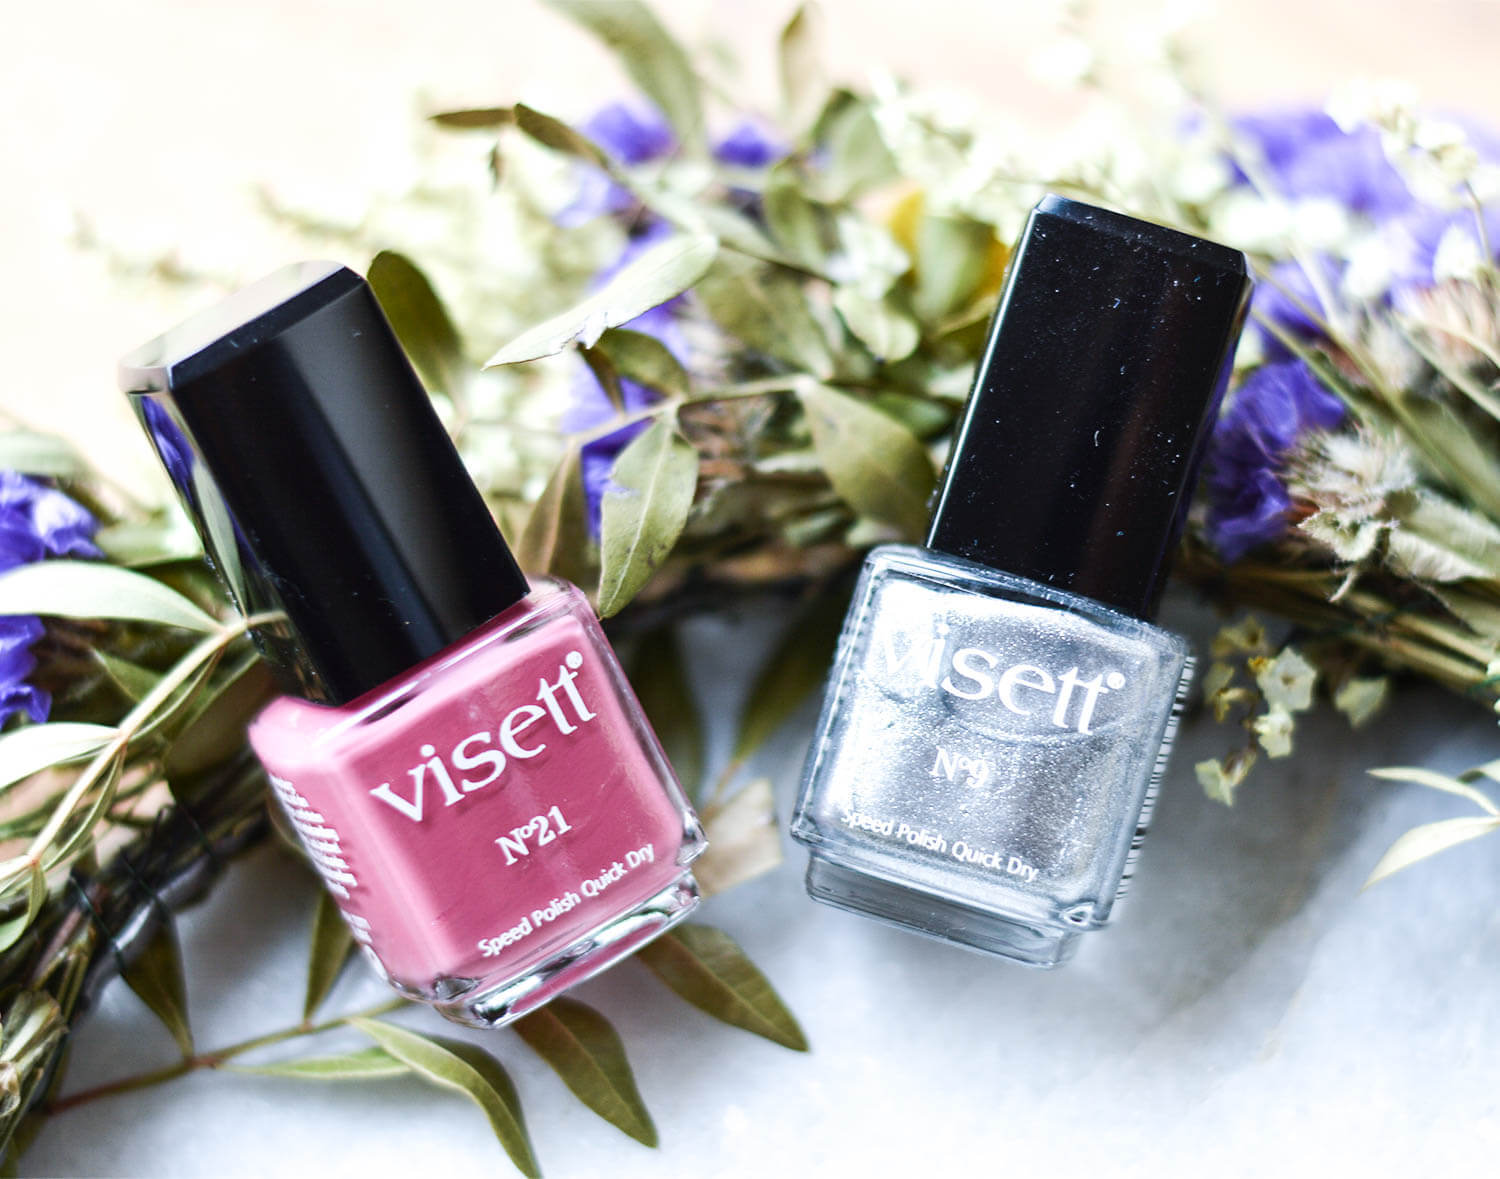 Kationette-lifestyleblog-beauty-test-review-new-bloggerclub-visett-nailpolish